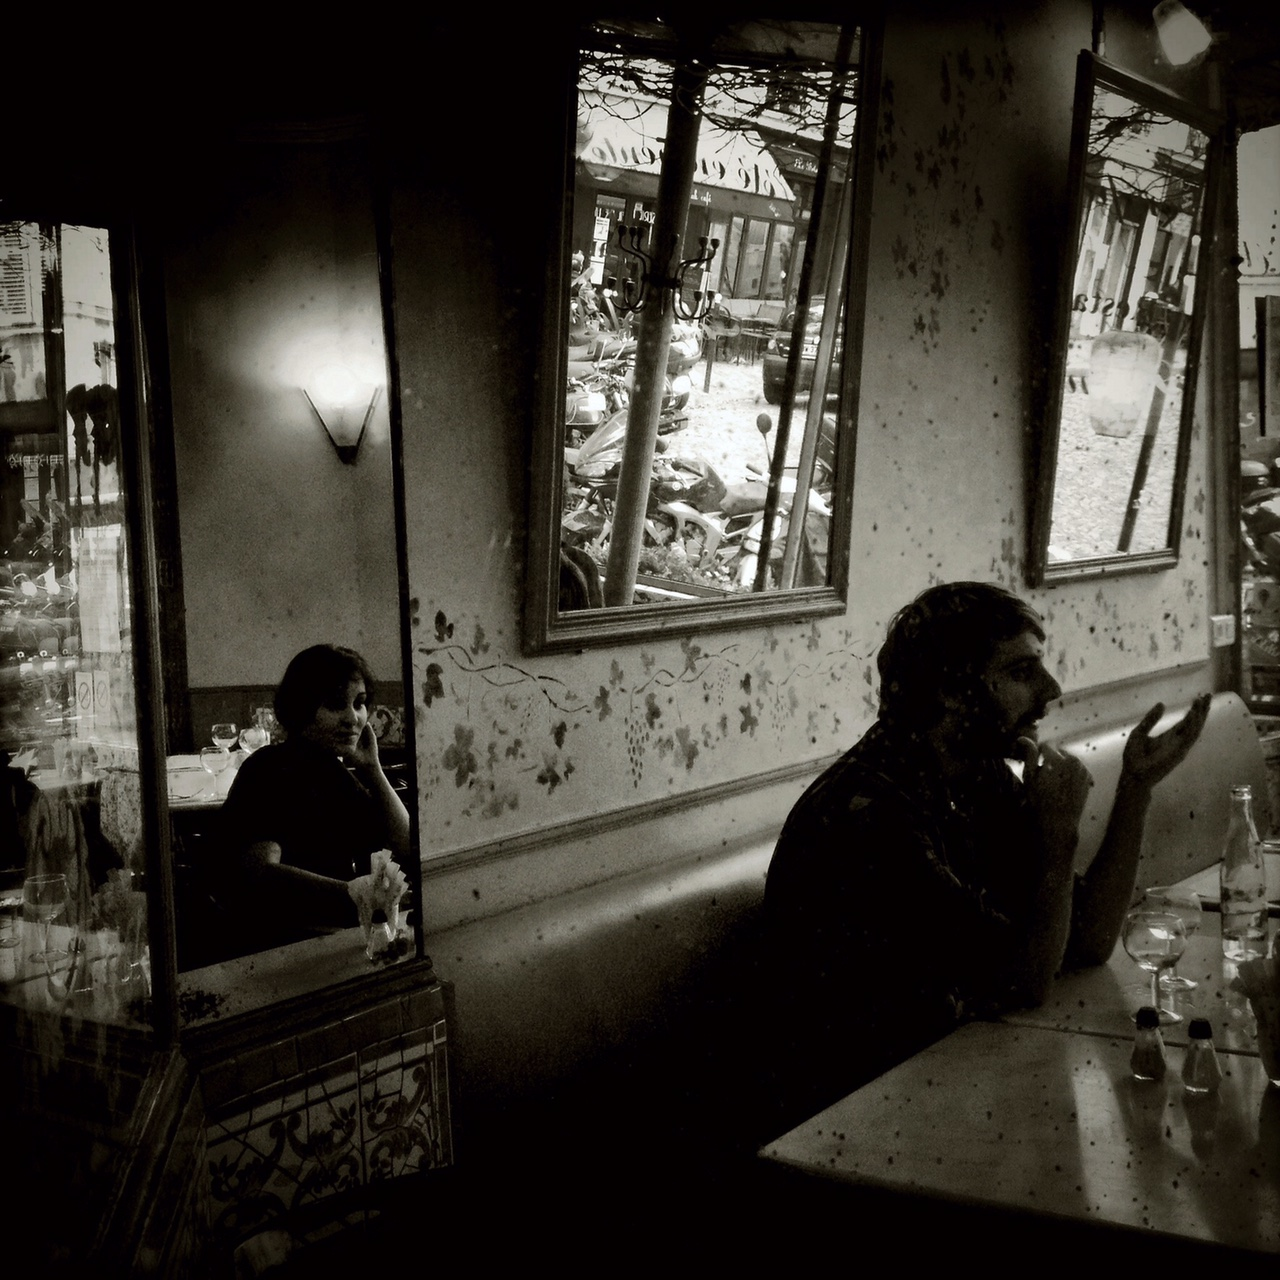 Mobile photography capiblities in a café setting. © Nettie Edwards